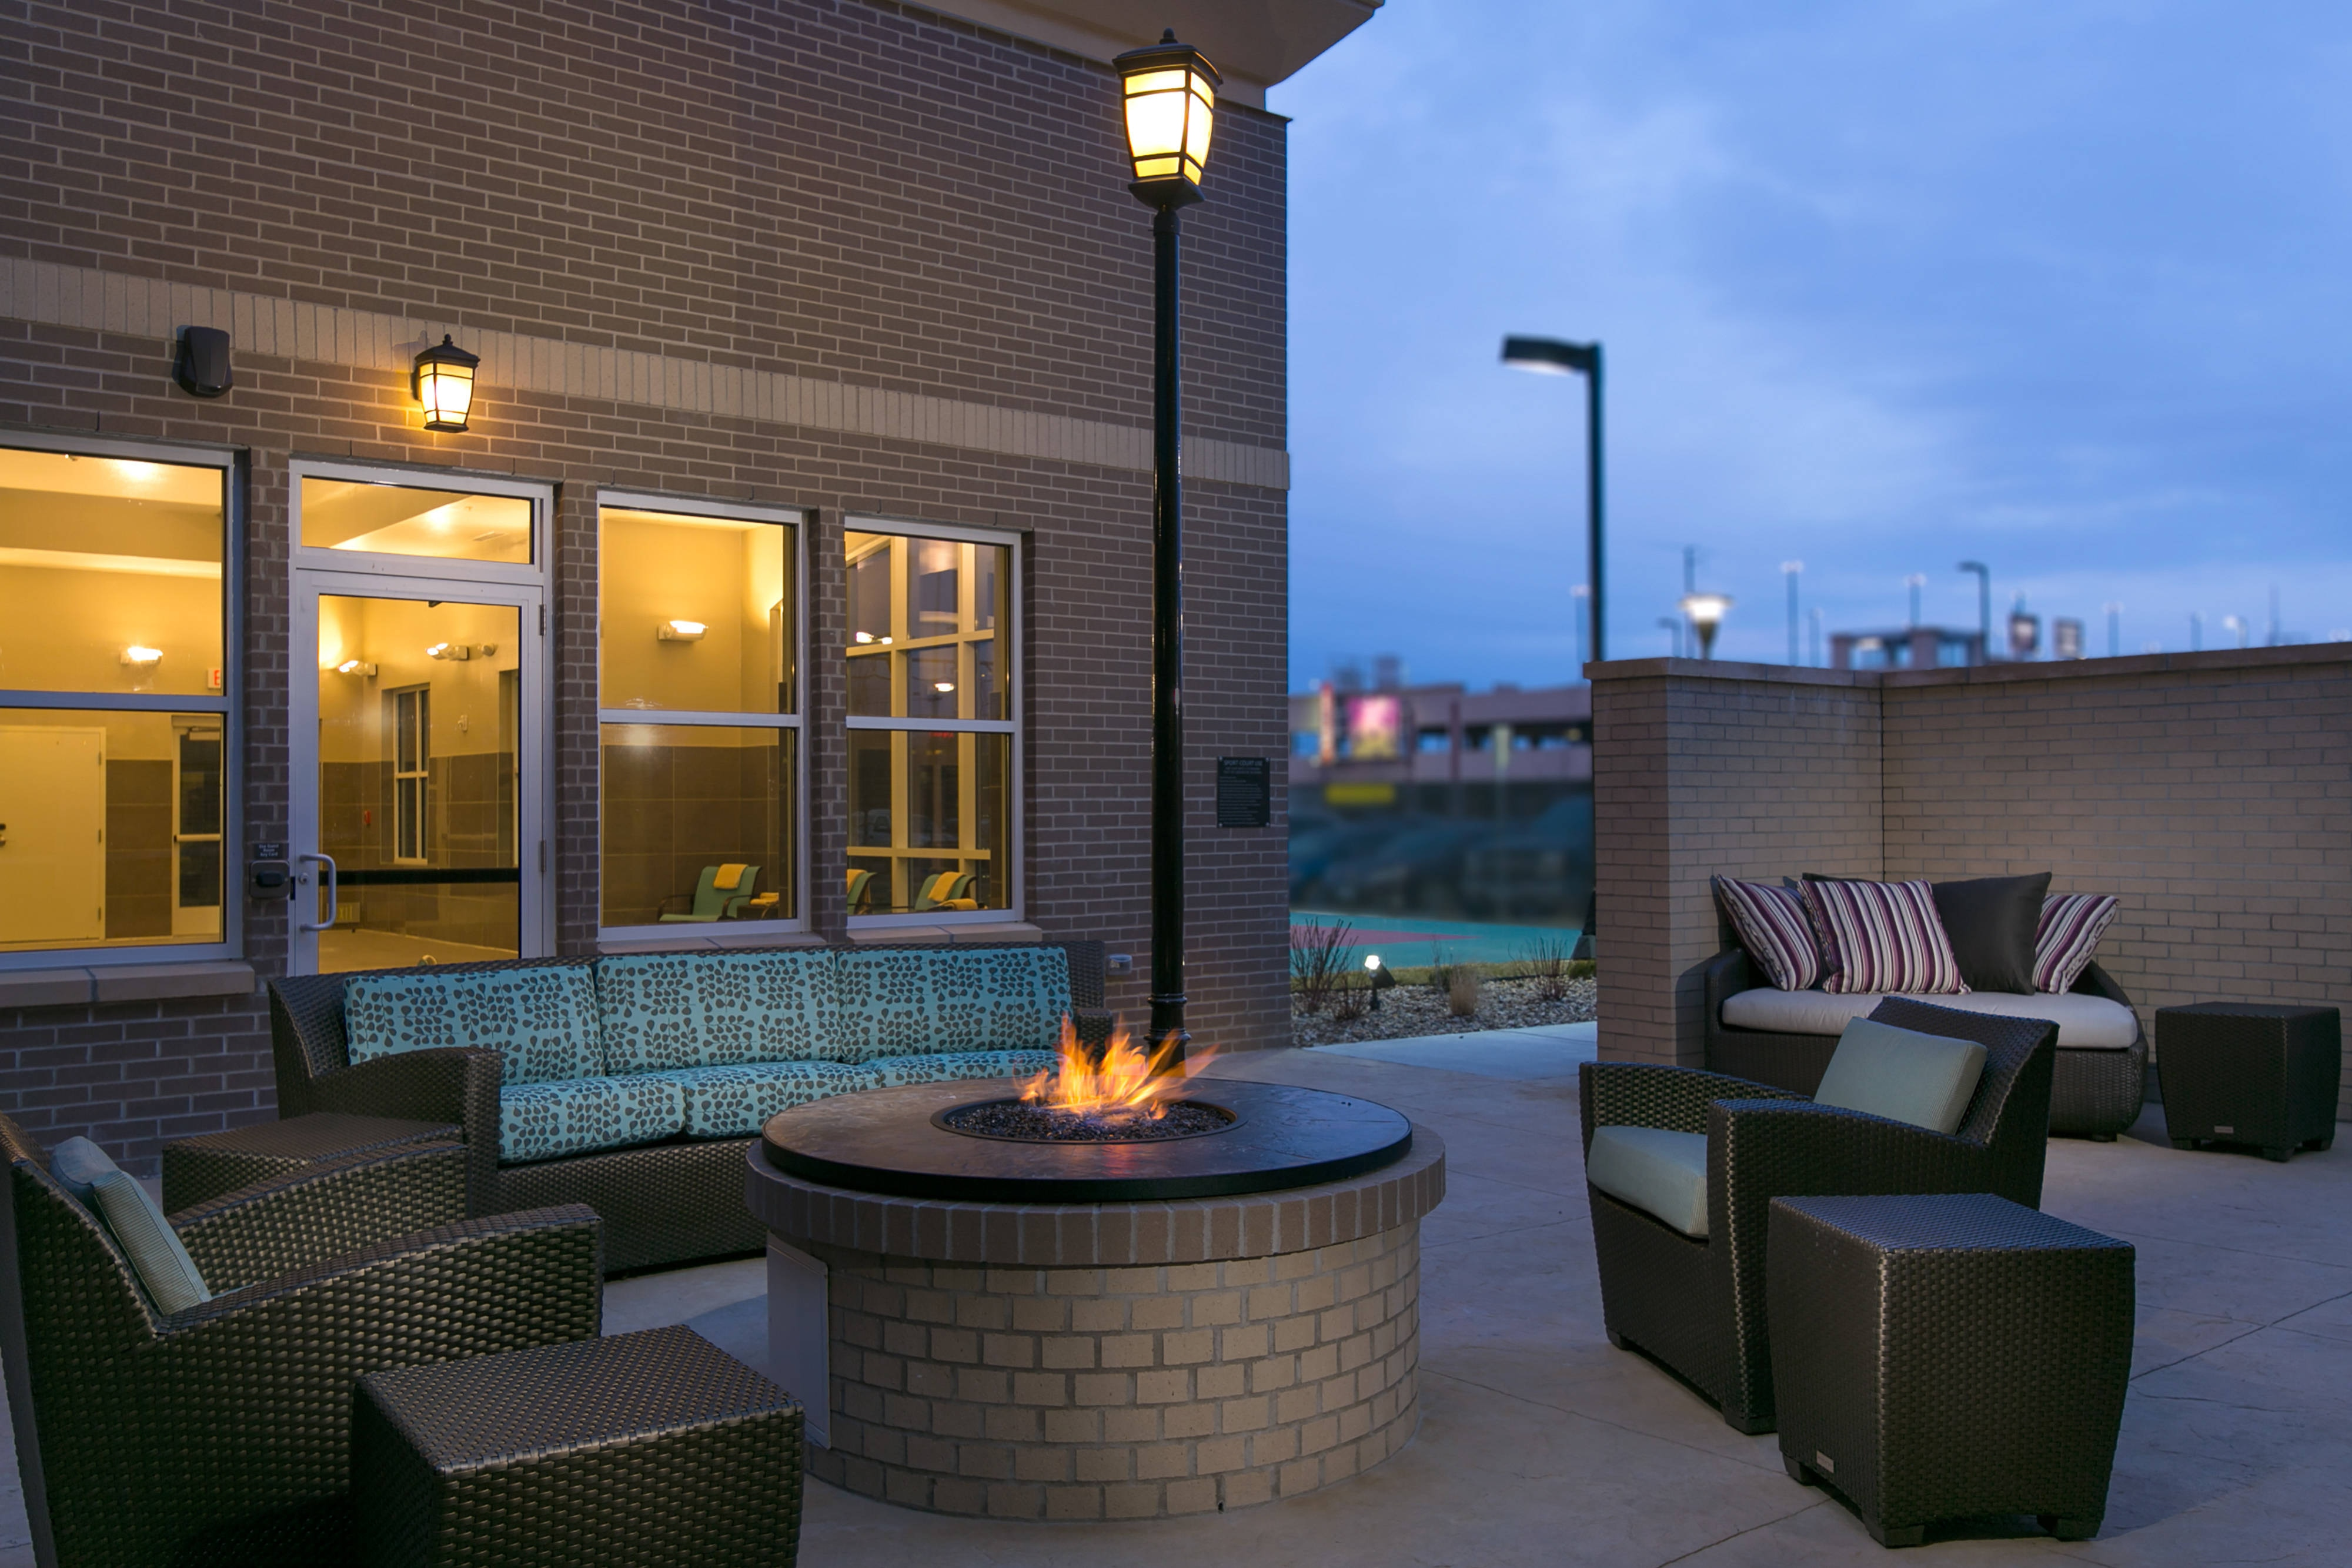 Fire Pit with Outdoor Seating